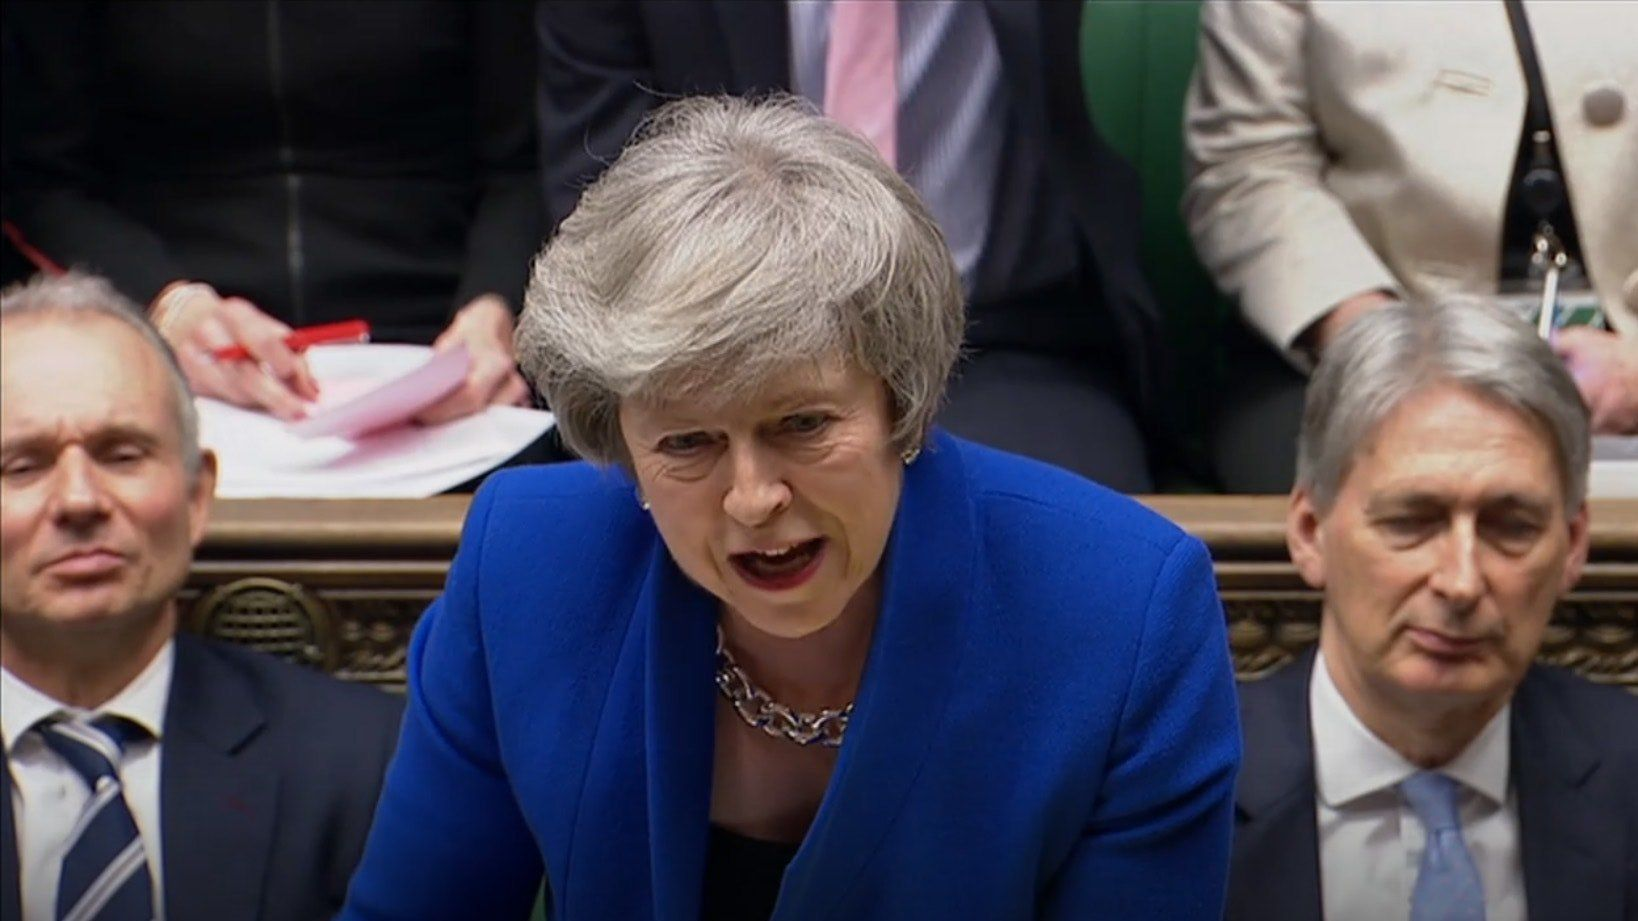 Brexit: UK PM May survives confidence vote